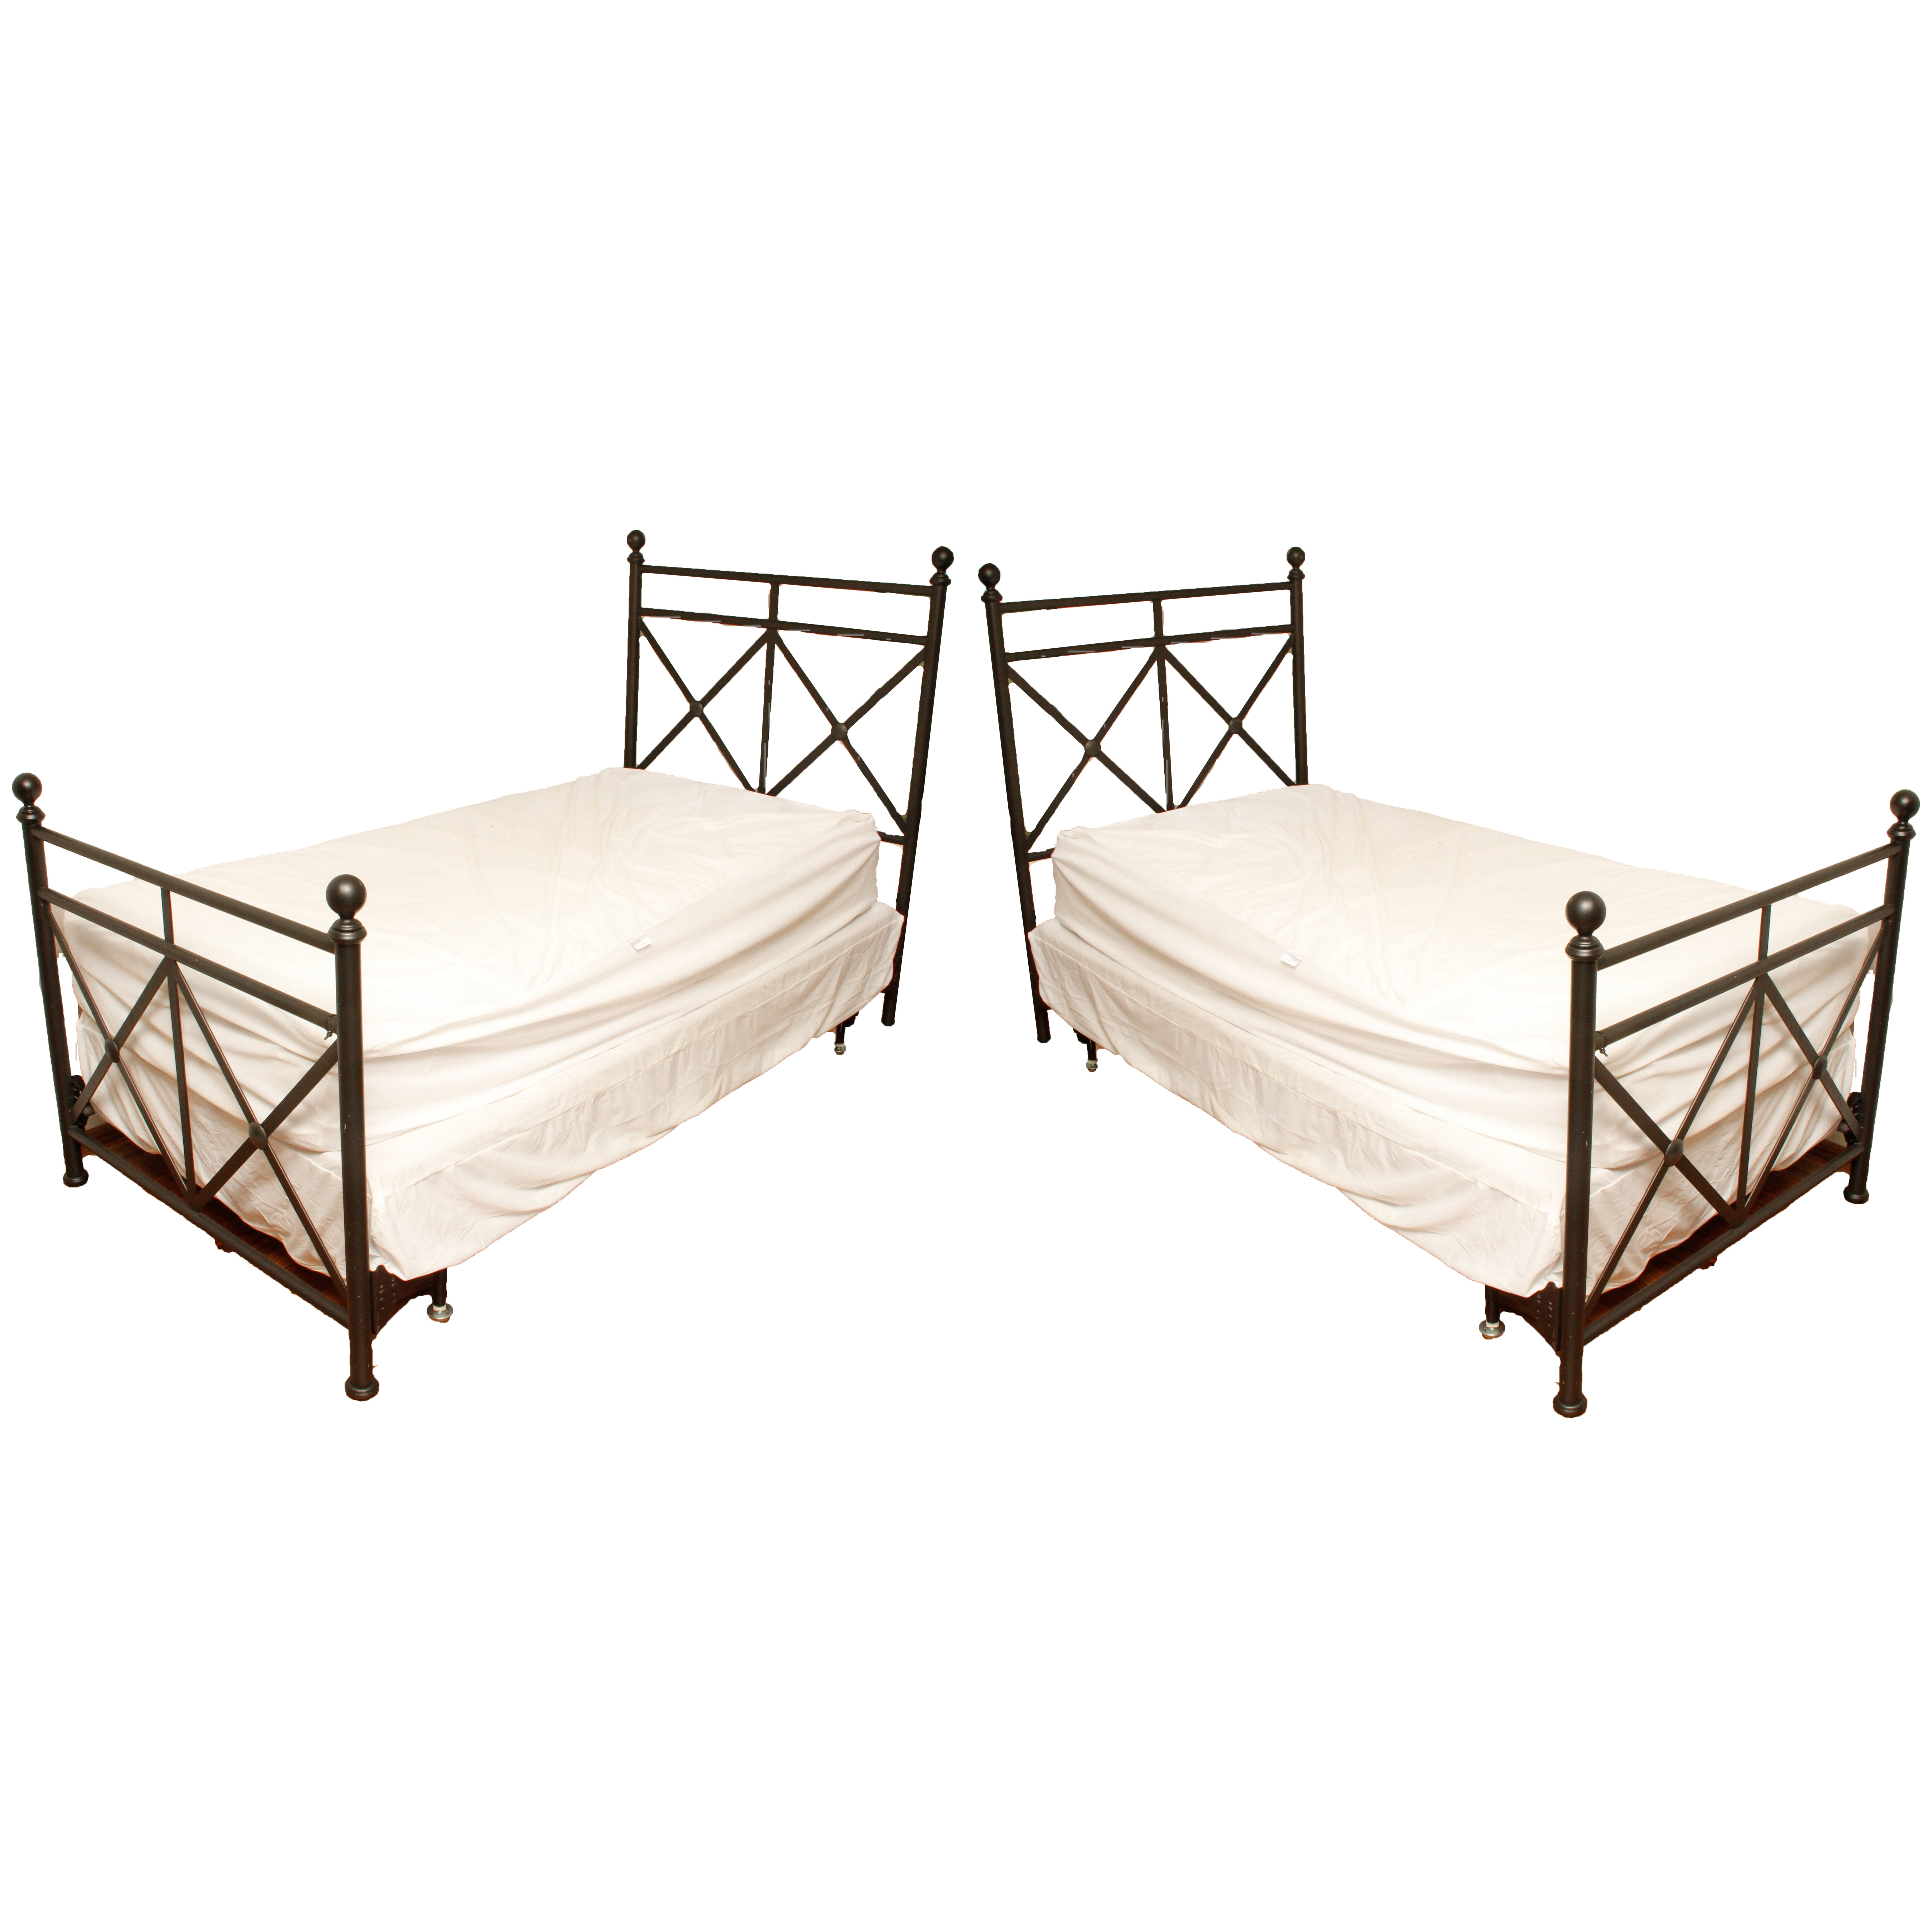 pair of metal twin bed frames